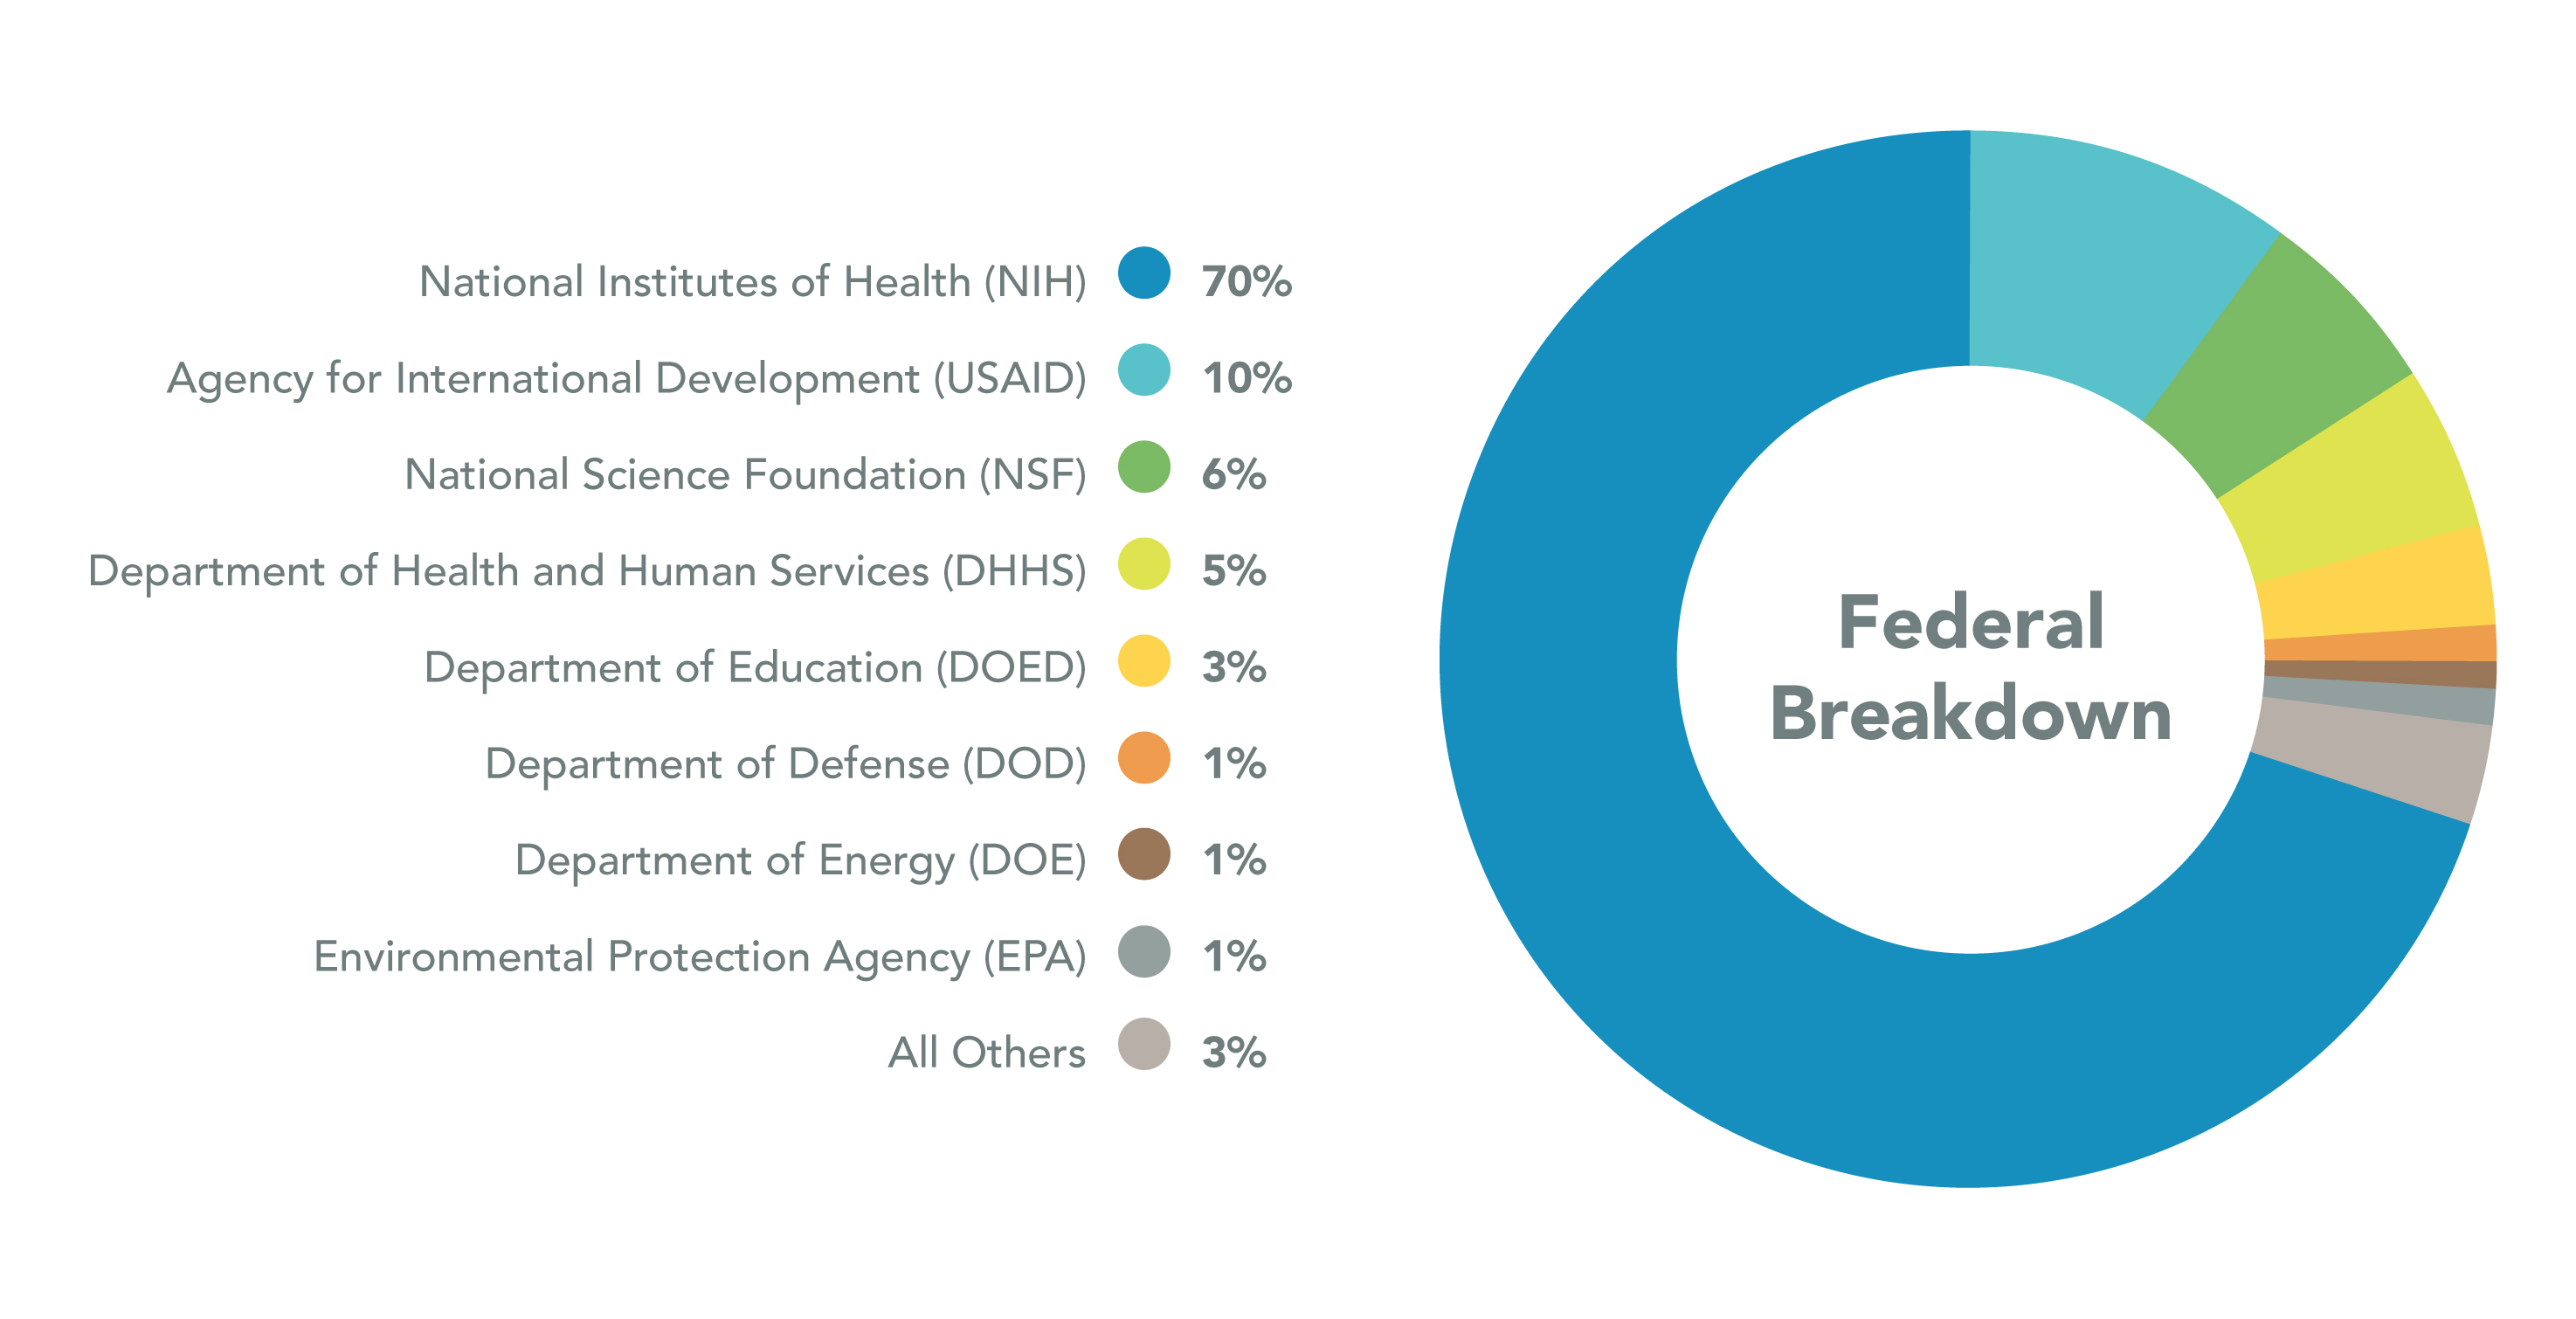 Pie chart showing Federal Breakdown for 2018. National Instituted of Health are 70%, Agency for International Development are 10%, National Science Foundation are 6%, Department of Health and Human Services are 5%, Department of Education are 3%, Department of Defense are 1%, Department of Energy are 1%, Environmental Protection Agency are 1%, and all Others are 3%.